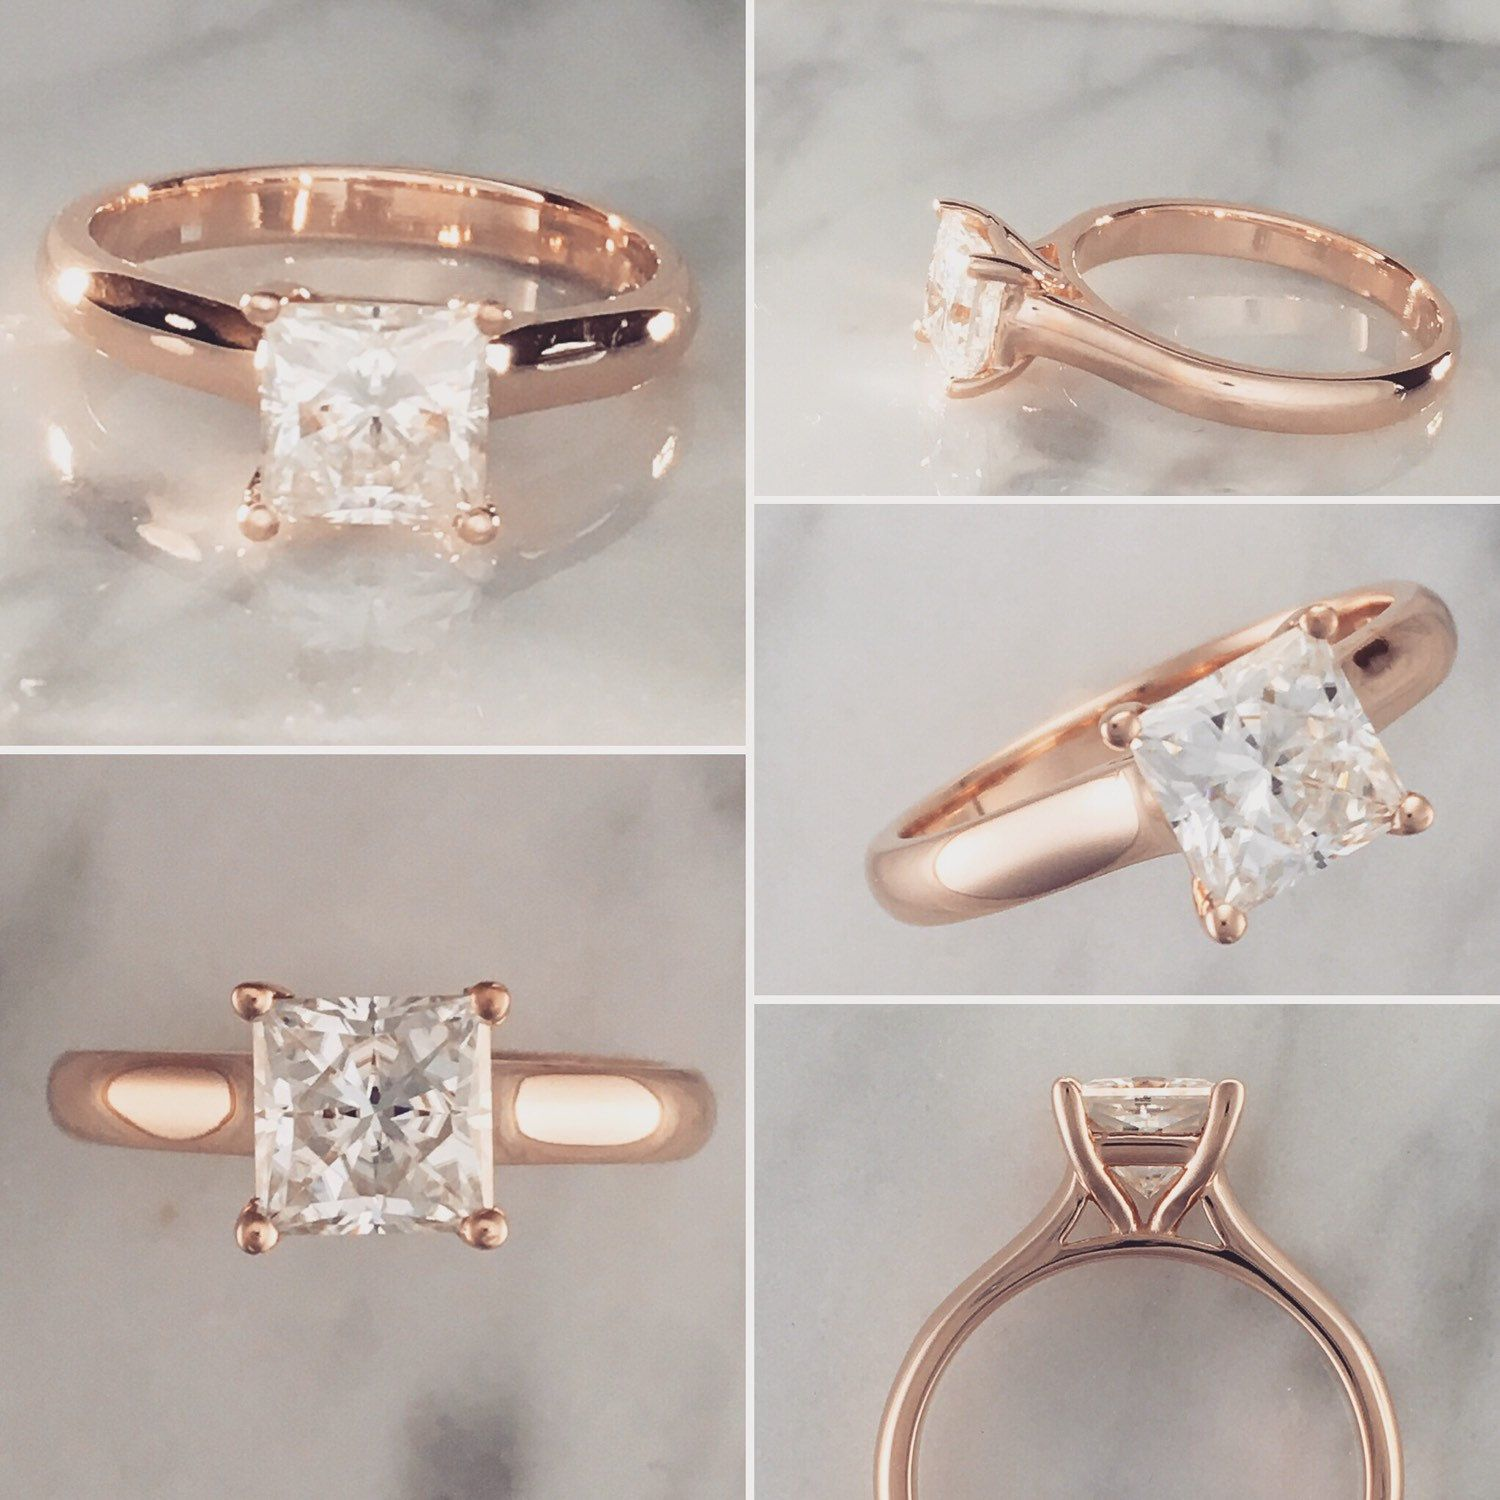 Princess Cut Solitaire Engagement Ring  65mm To 7mm Stone  14k White Gold  Or Platinum  Fully Customizable  Affordable  Setting Only